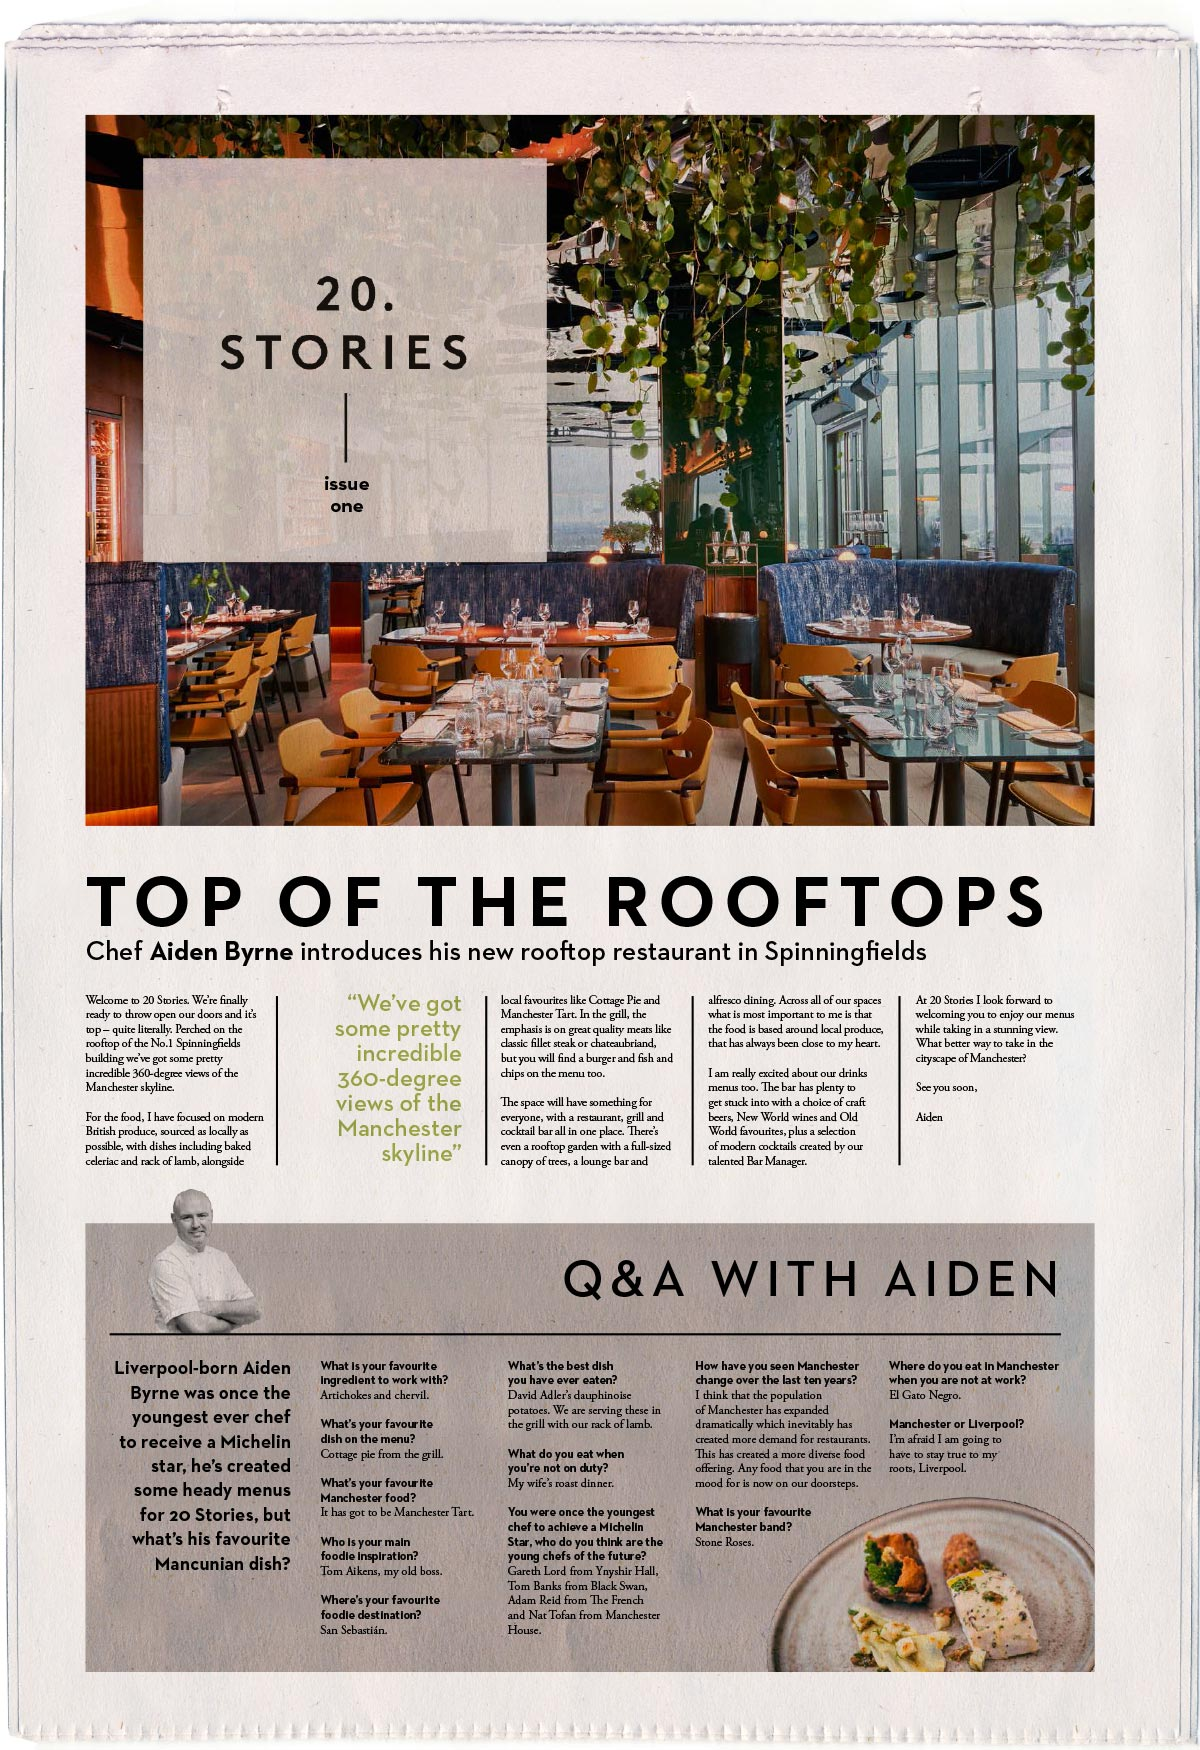 Newspaper Design for 20 Stories Restaurant